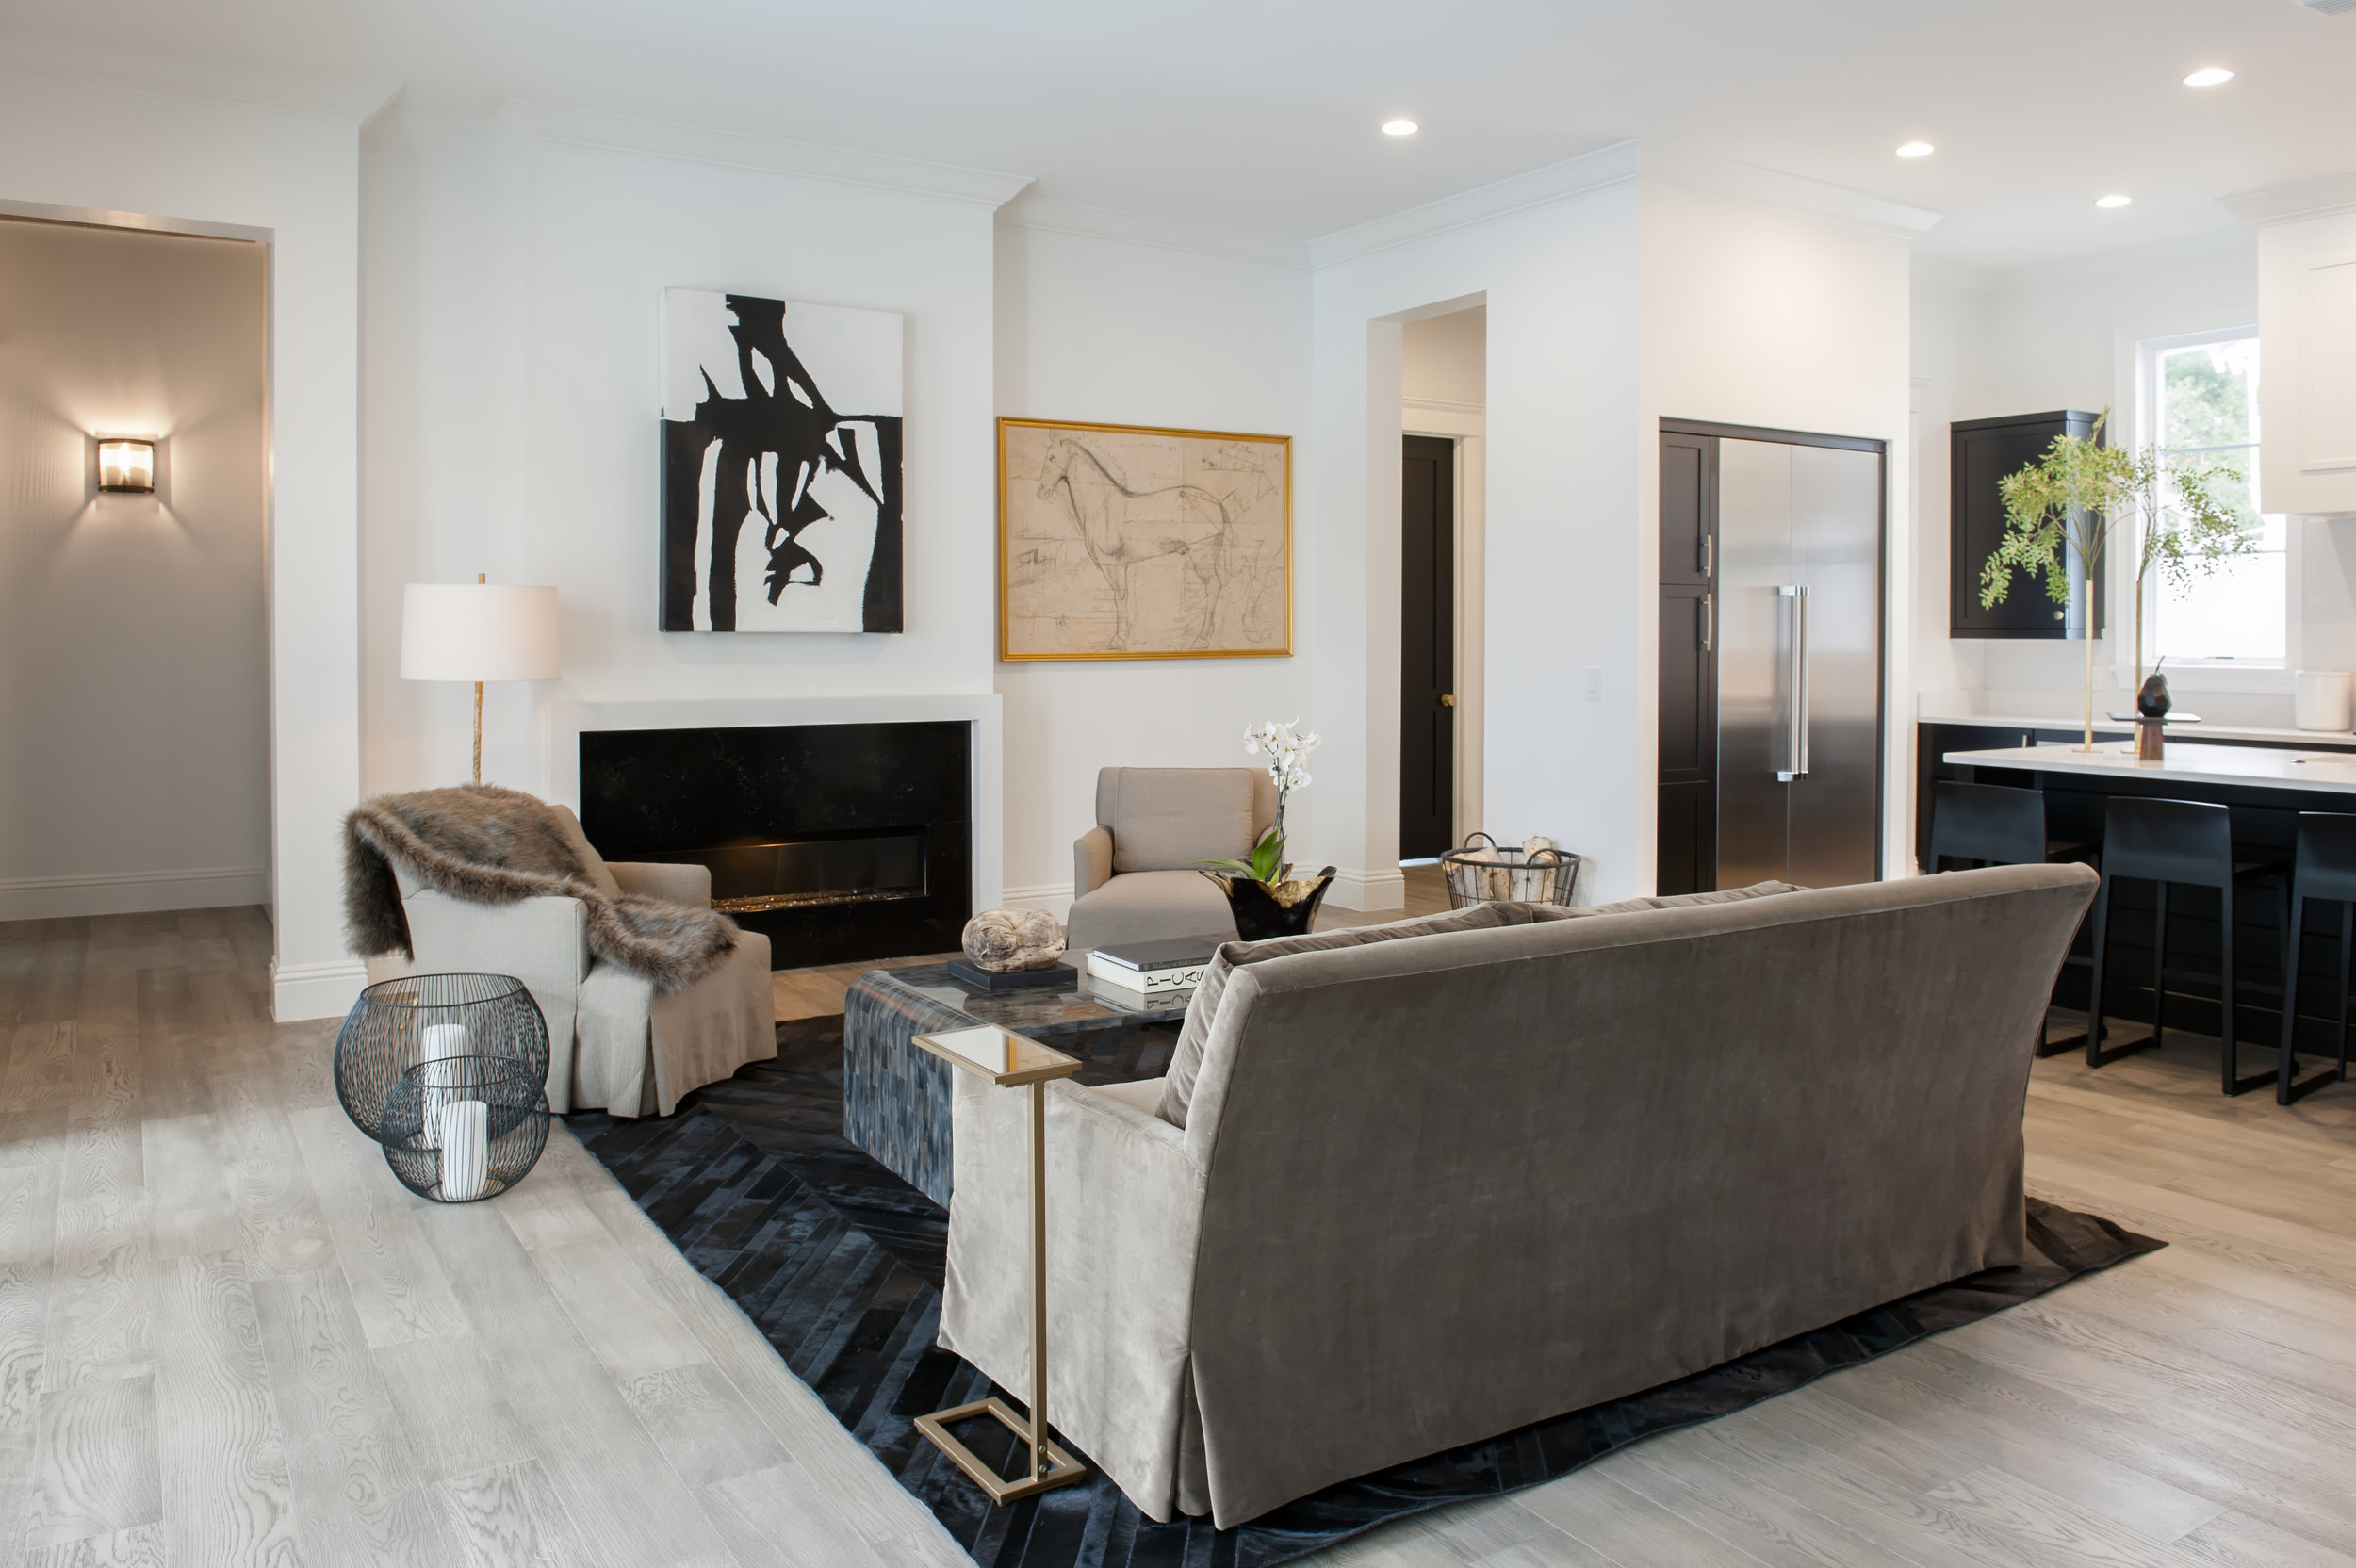 Versatile living room space is essential to showcase the many unique variations to a buyer. A 3-piece seating arrangement creates a communal focal point, allowing conversation to flow in this open concept.